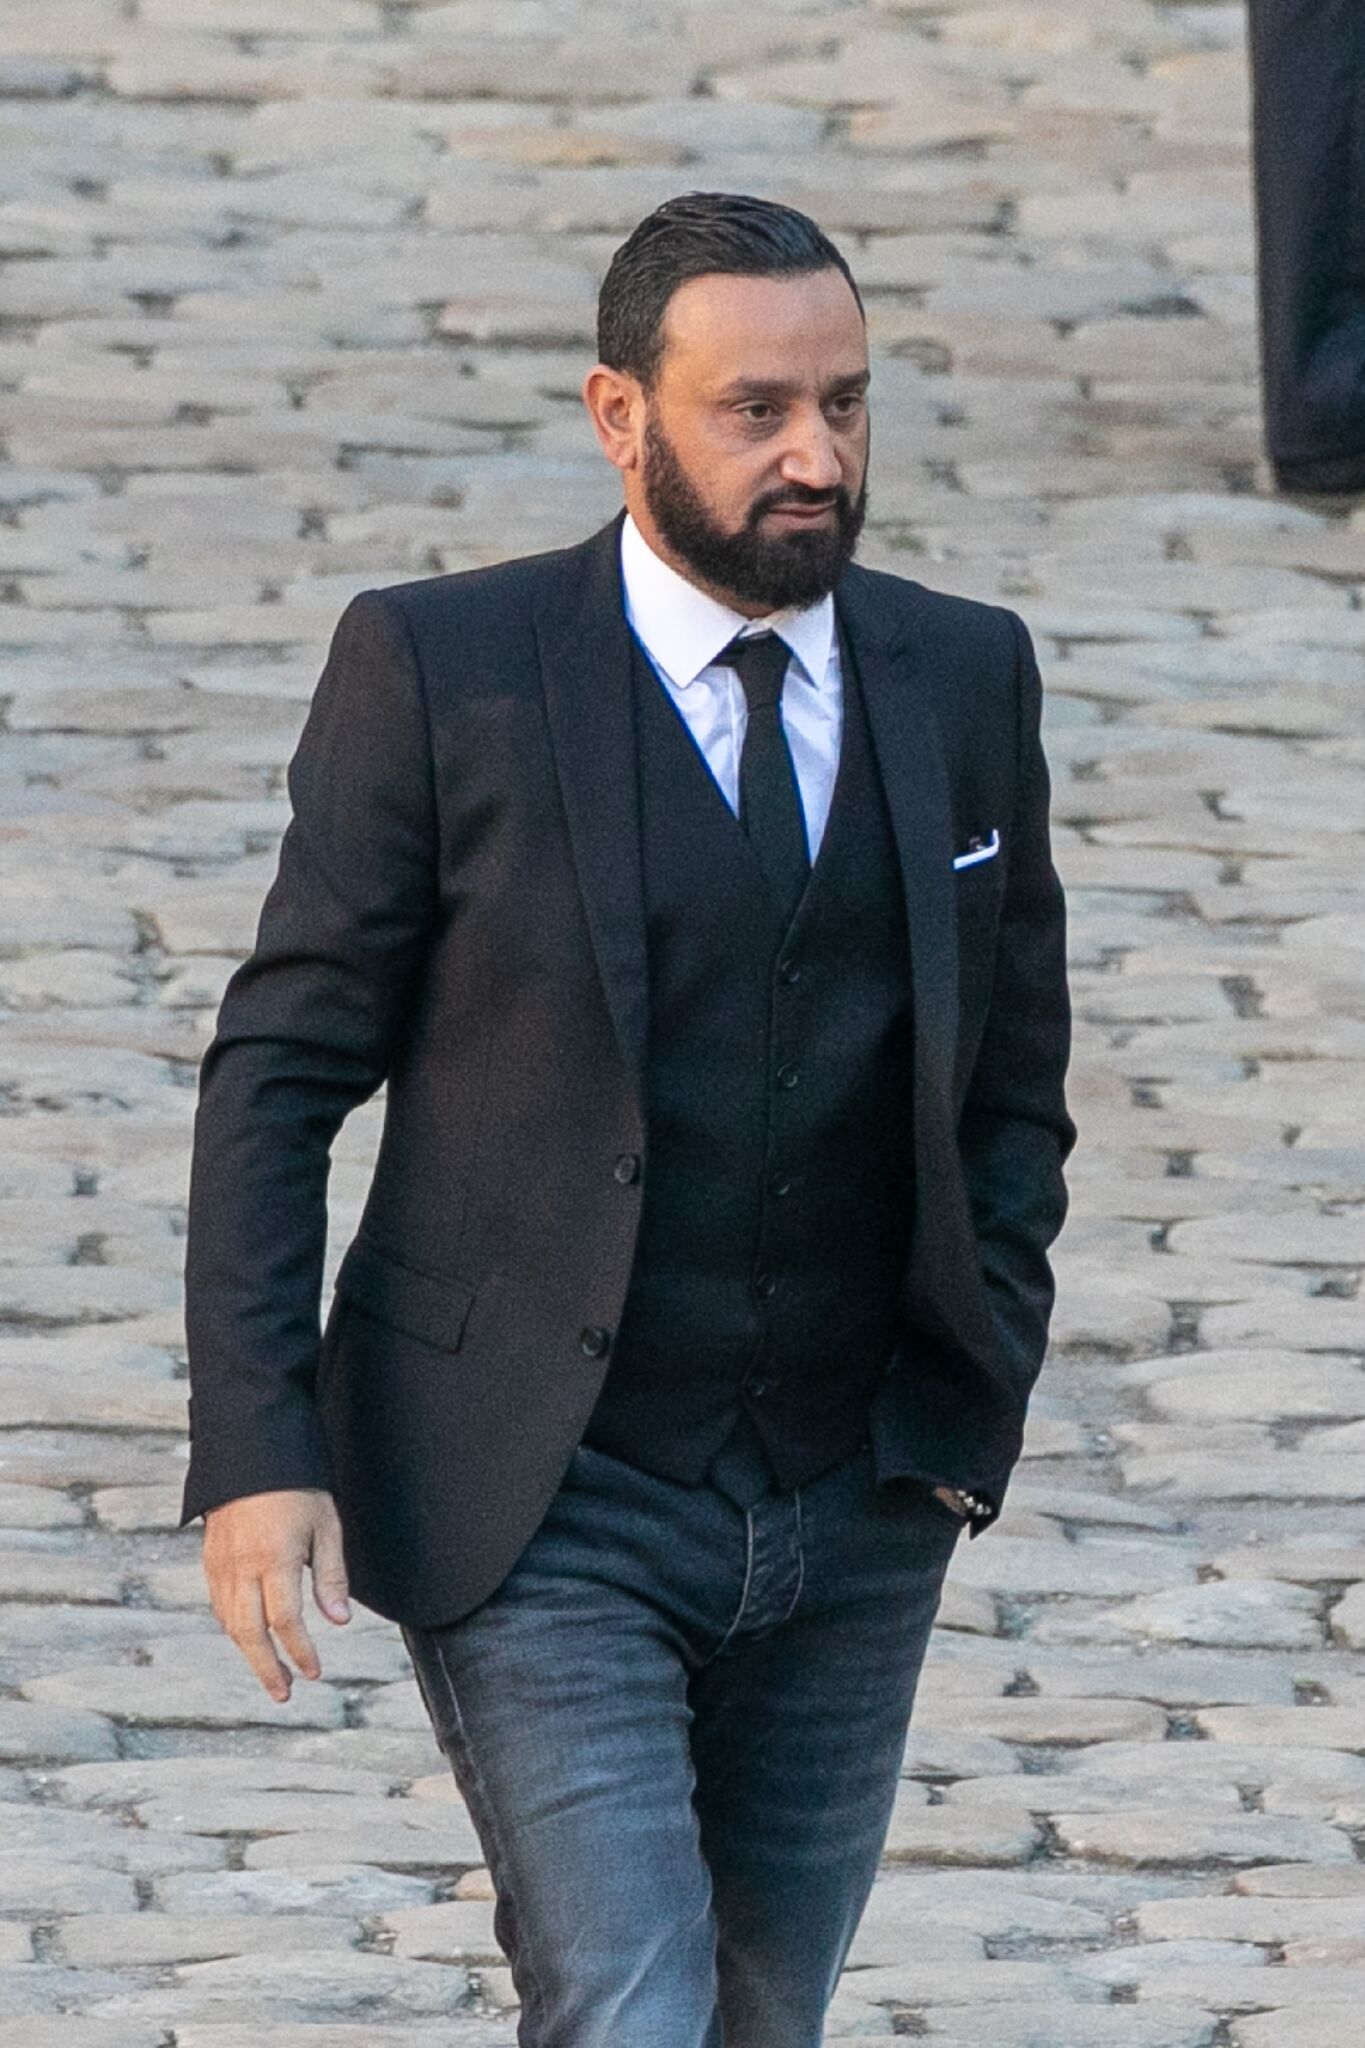 Le présentateur Cyril Hanouna. l Photo : Getty Images